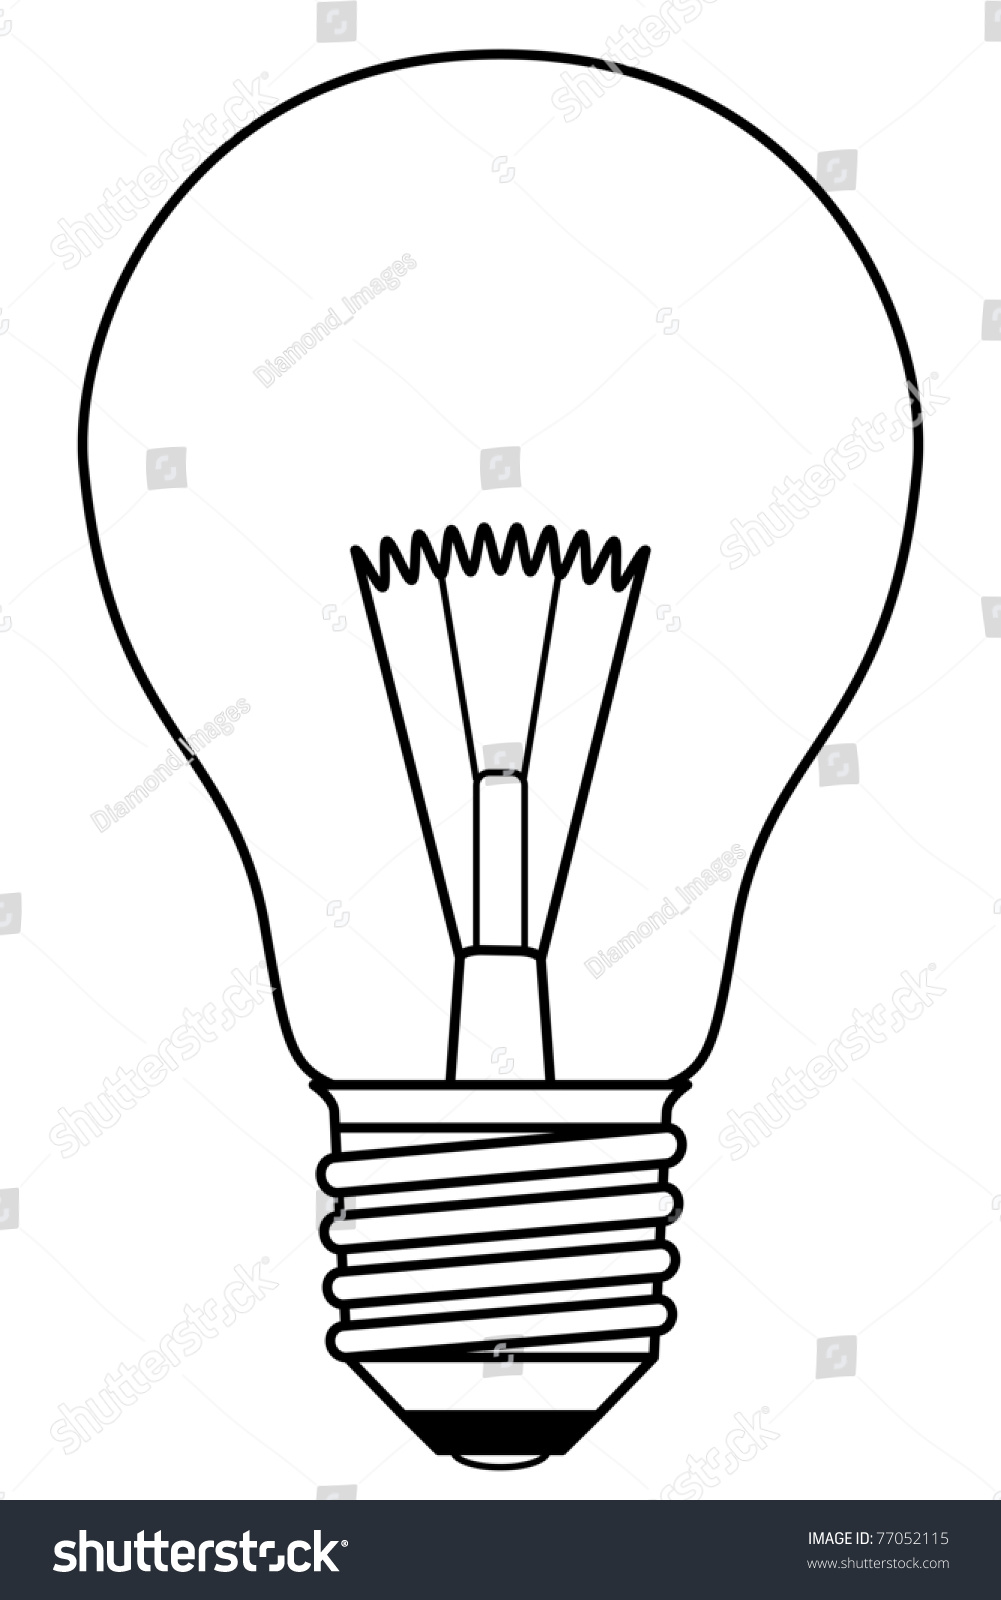 hight resolution of traditional inefficient incandescent light bulb in a black and white design